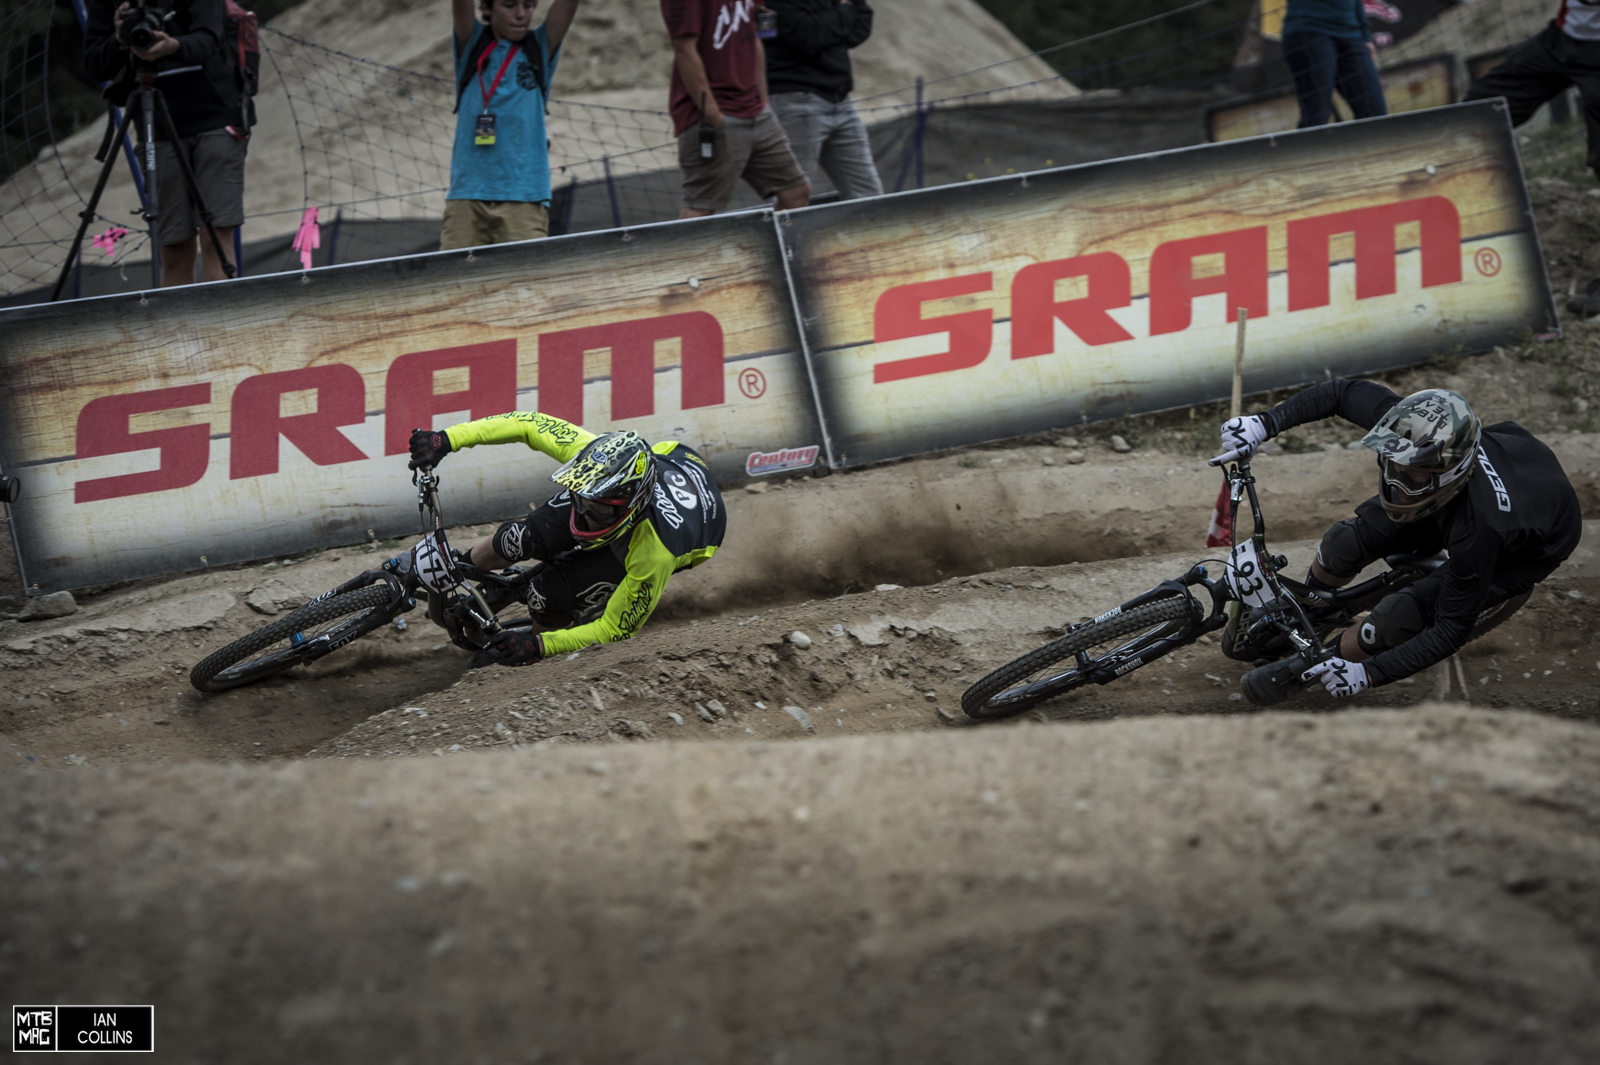 brian lopes the best downhill dual slalom racer ever 15 ways to have your best summer's riding ever  brian lopes signs up for dual slalom  in the mountain biking uk eliminator at bikeradar live the californian racer will face a host of big .